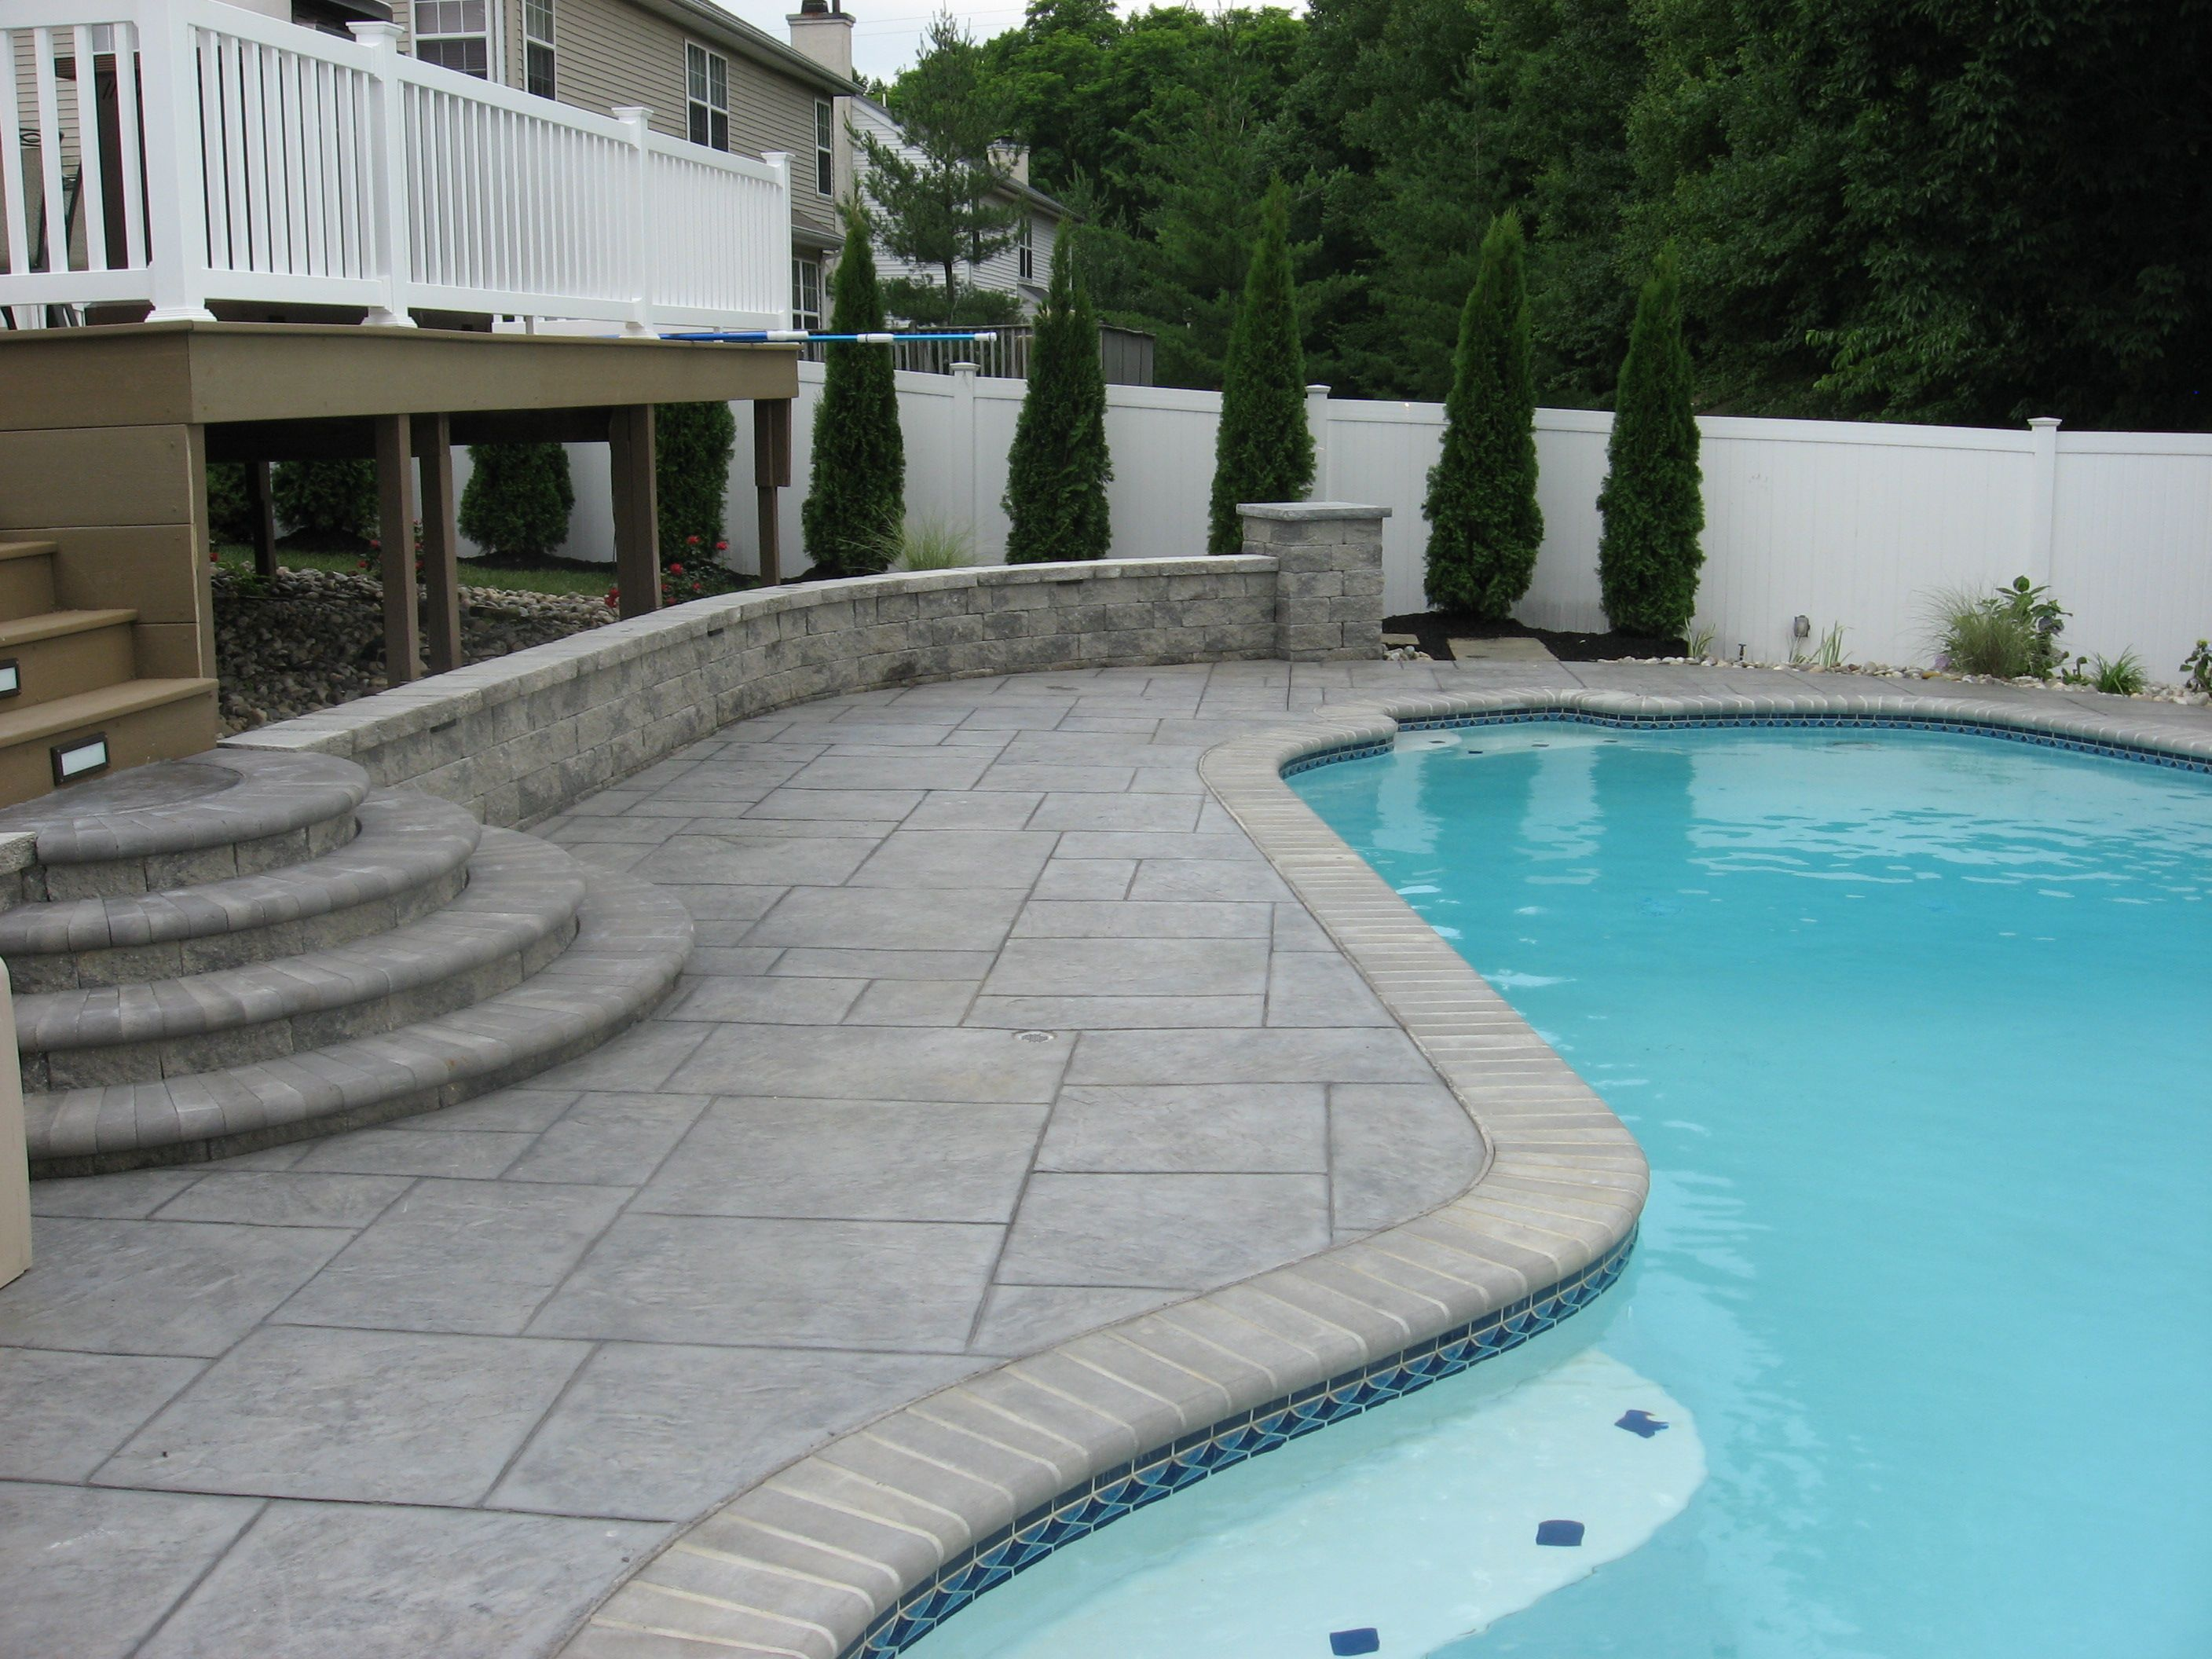 Charmant Stamped Concrete Patios Around A Pool | Pattern Concrete For Pools